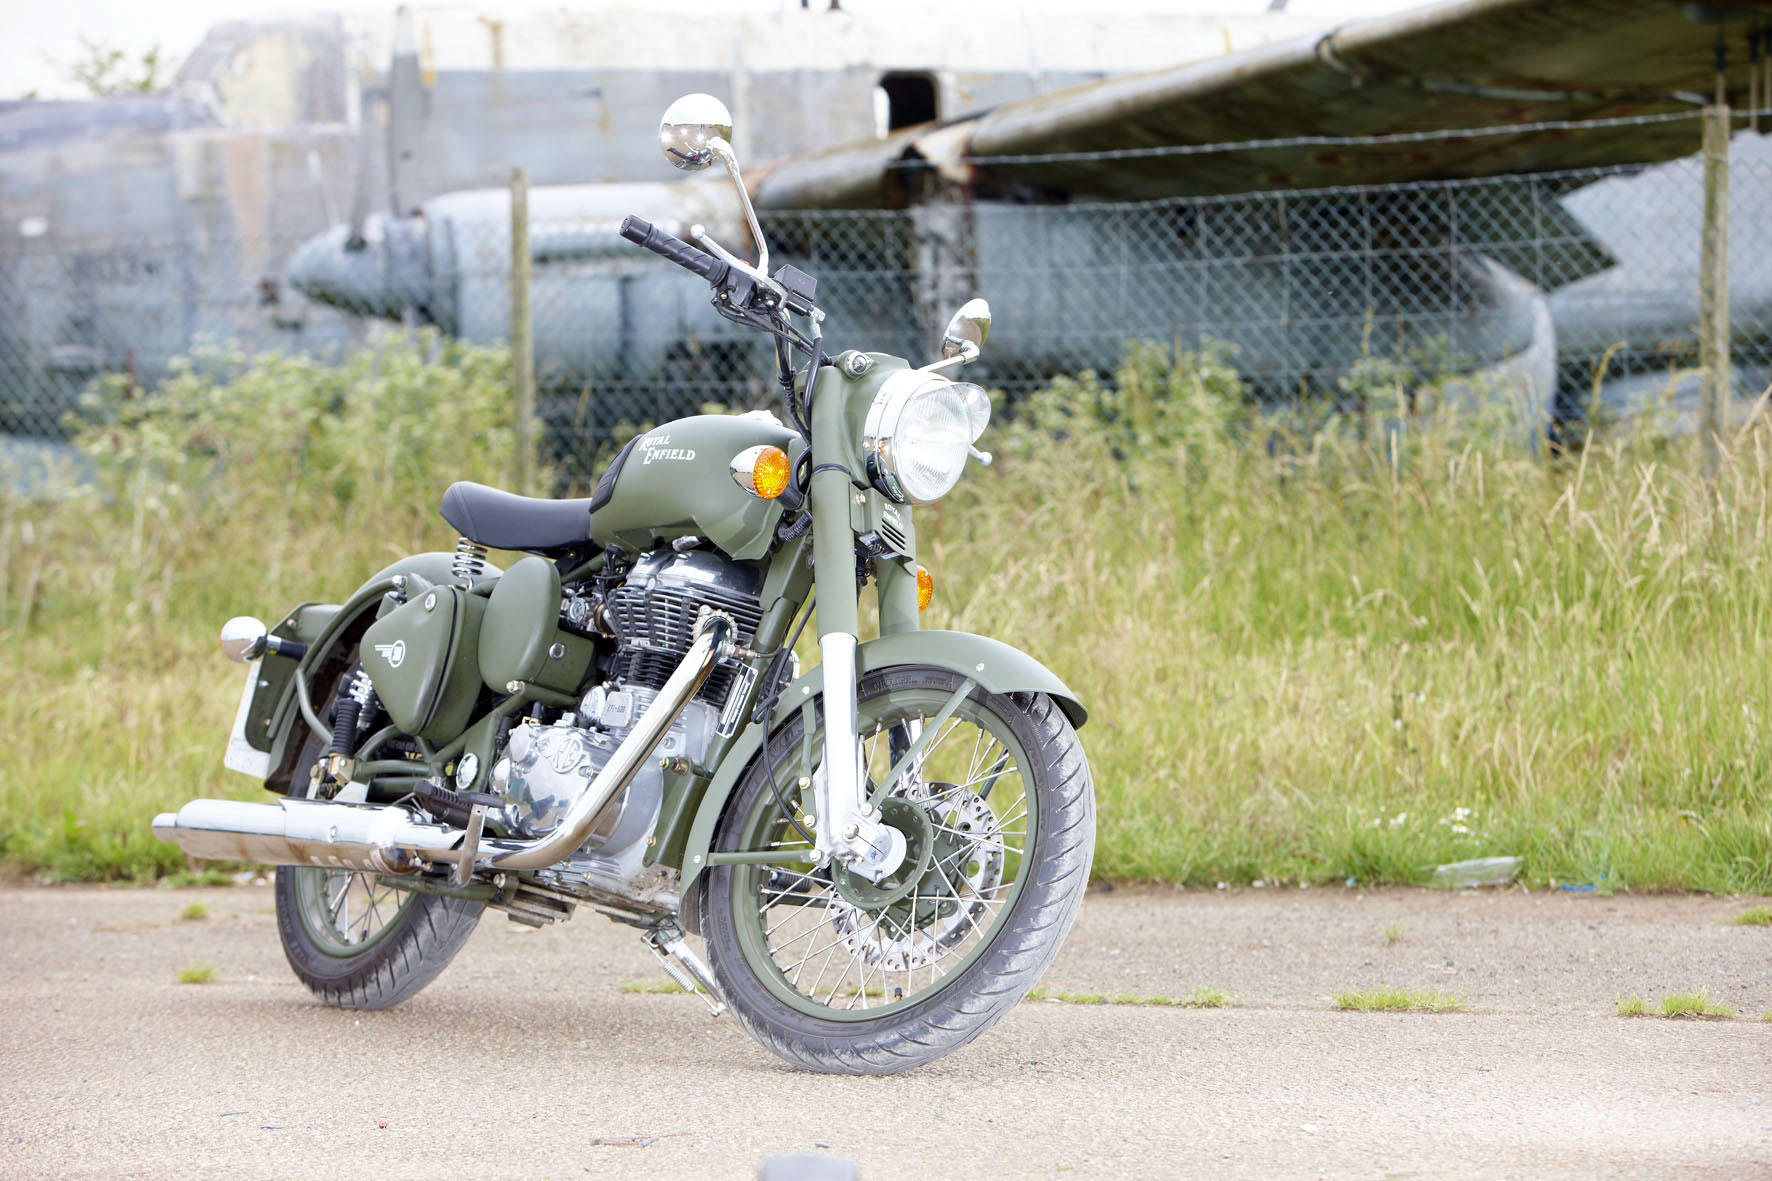 Royal Enfield Bullet 350 Army 1989 images #122466